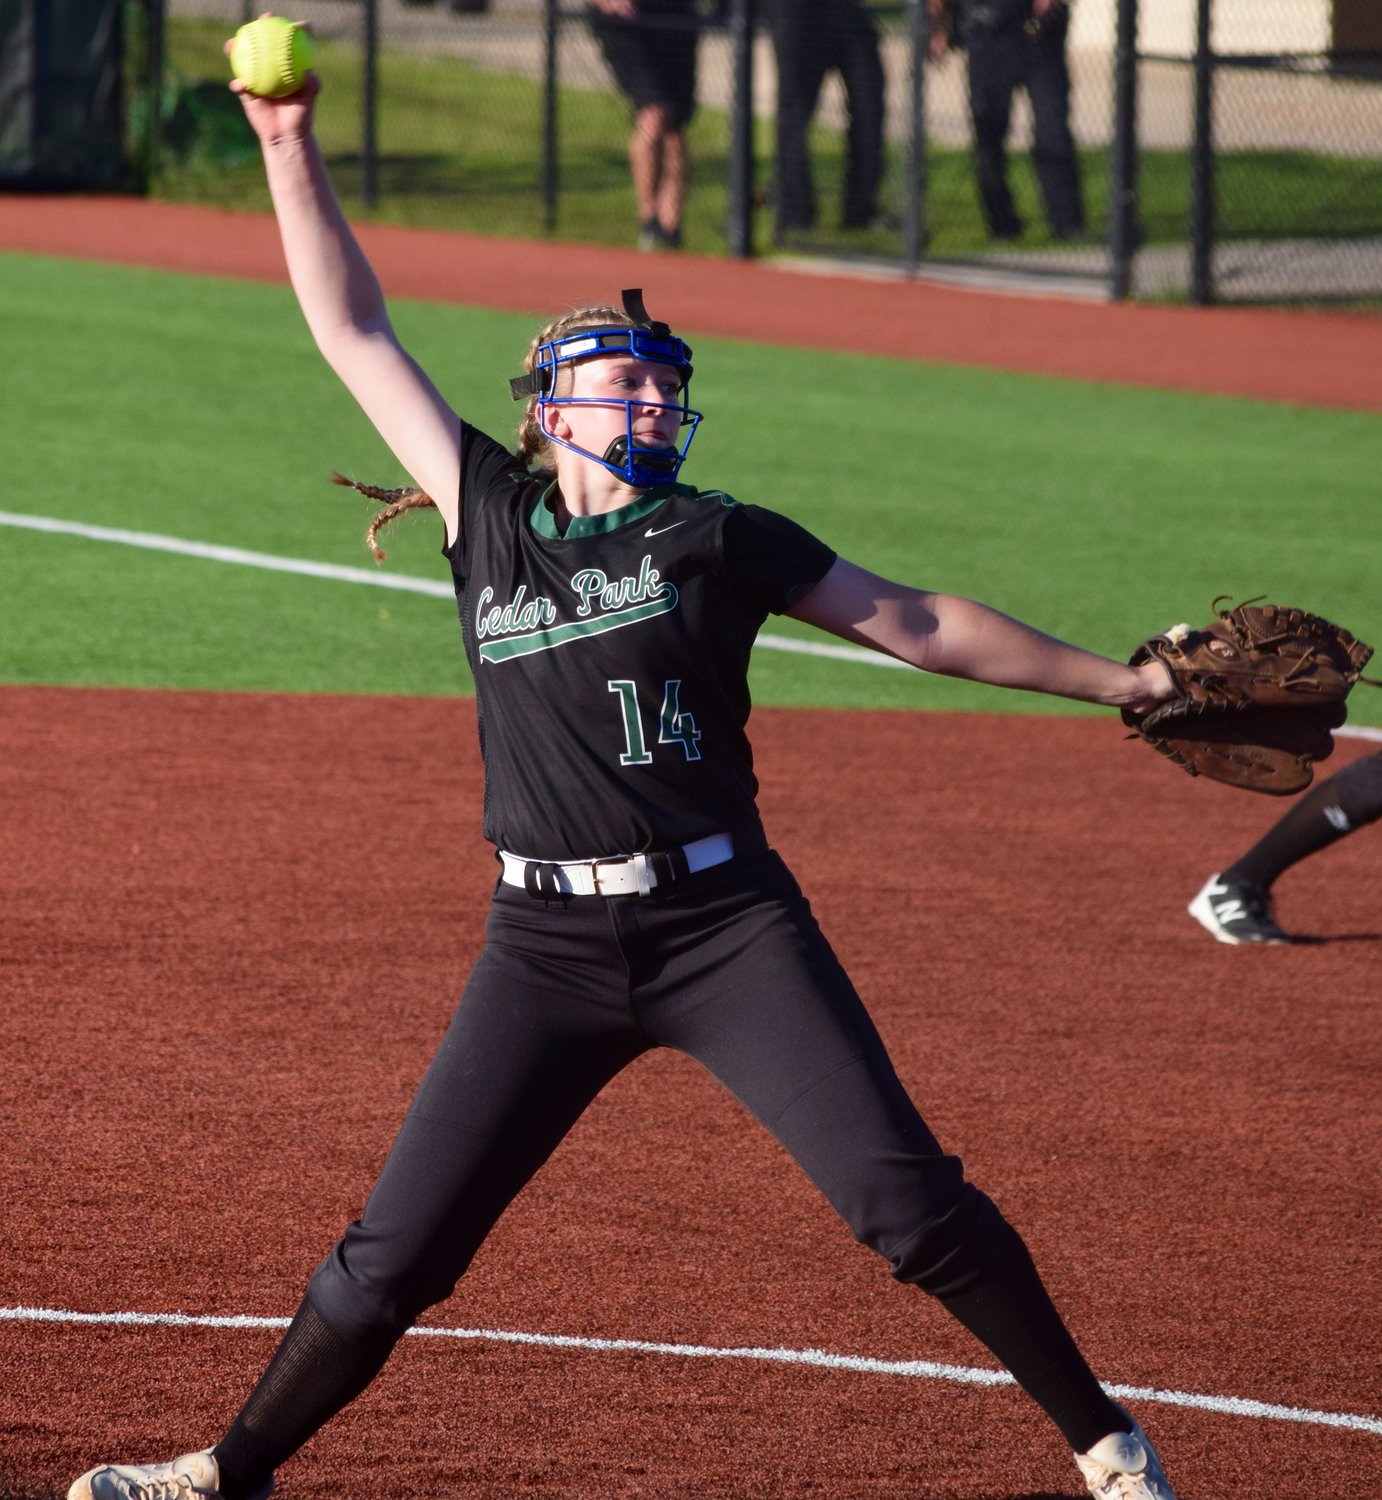 Madyn Singleton had two strikeouts, but Cedar Park lost to East View 4-3 in extra innings on Friday to bring the Lady Timberwolves' season to an end.